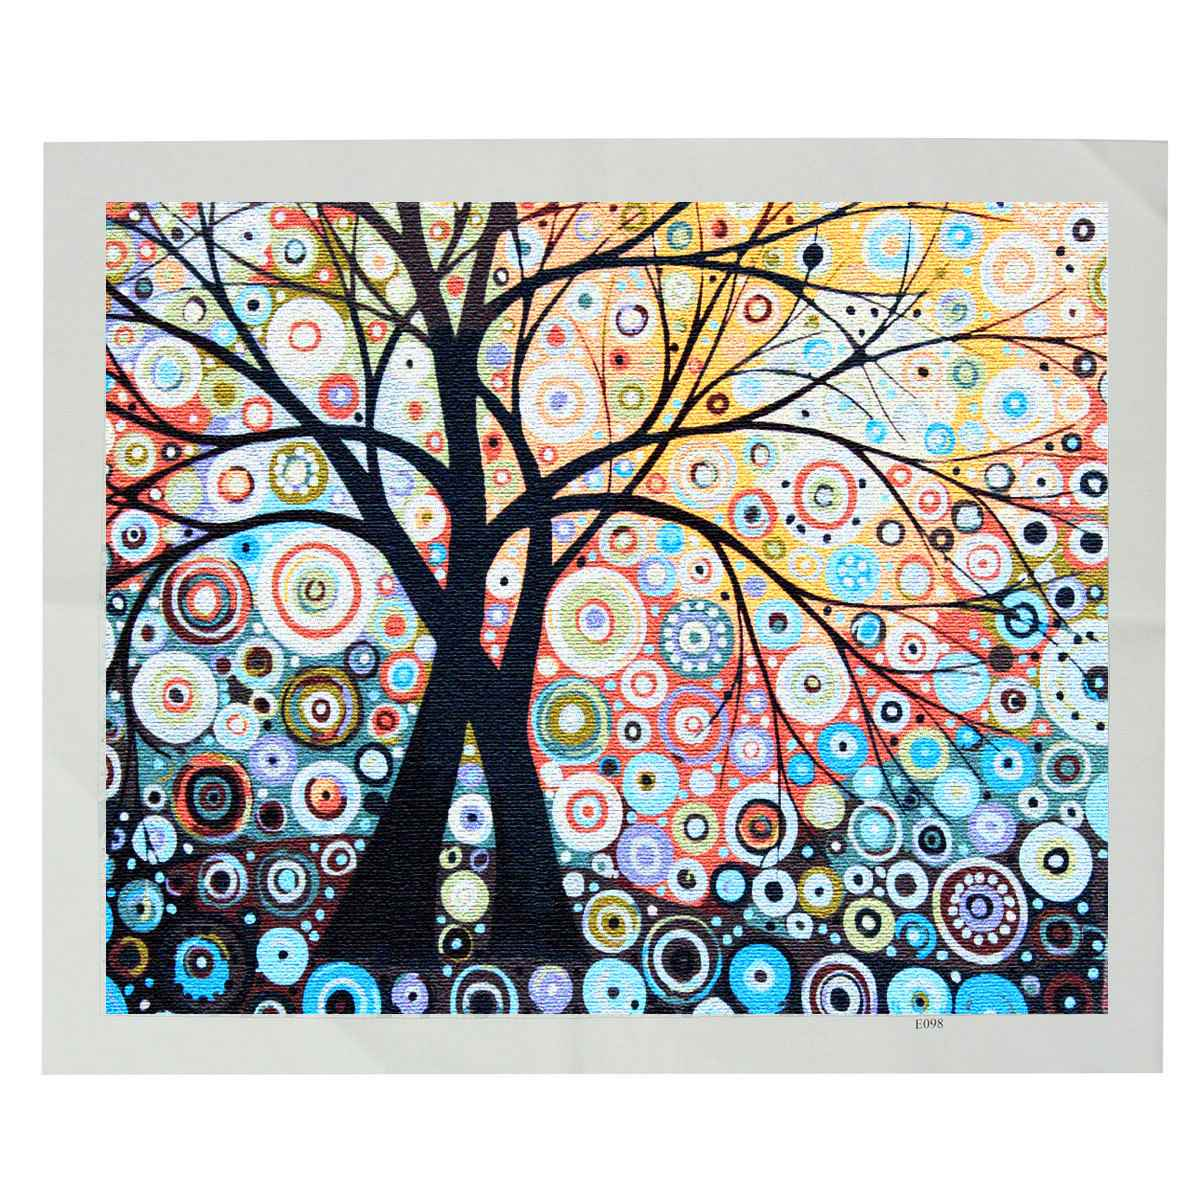 Aliexpress Com Home House Decorate Magic New Diy Paint By Number 16x20inch Kit Abstract Tree On Canvas Cool Boy Girl Party Gift From Reliable